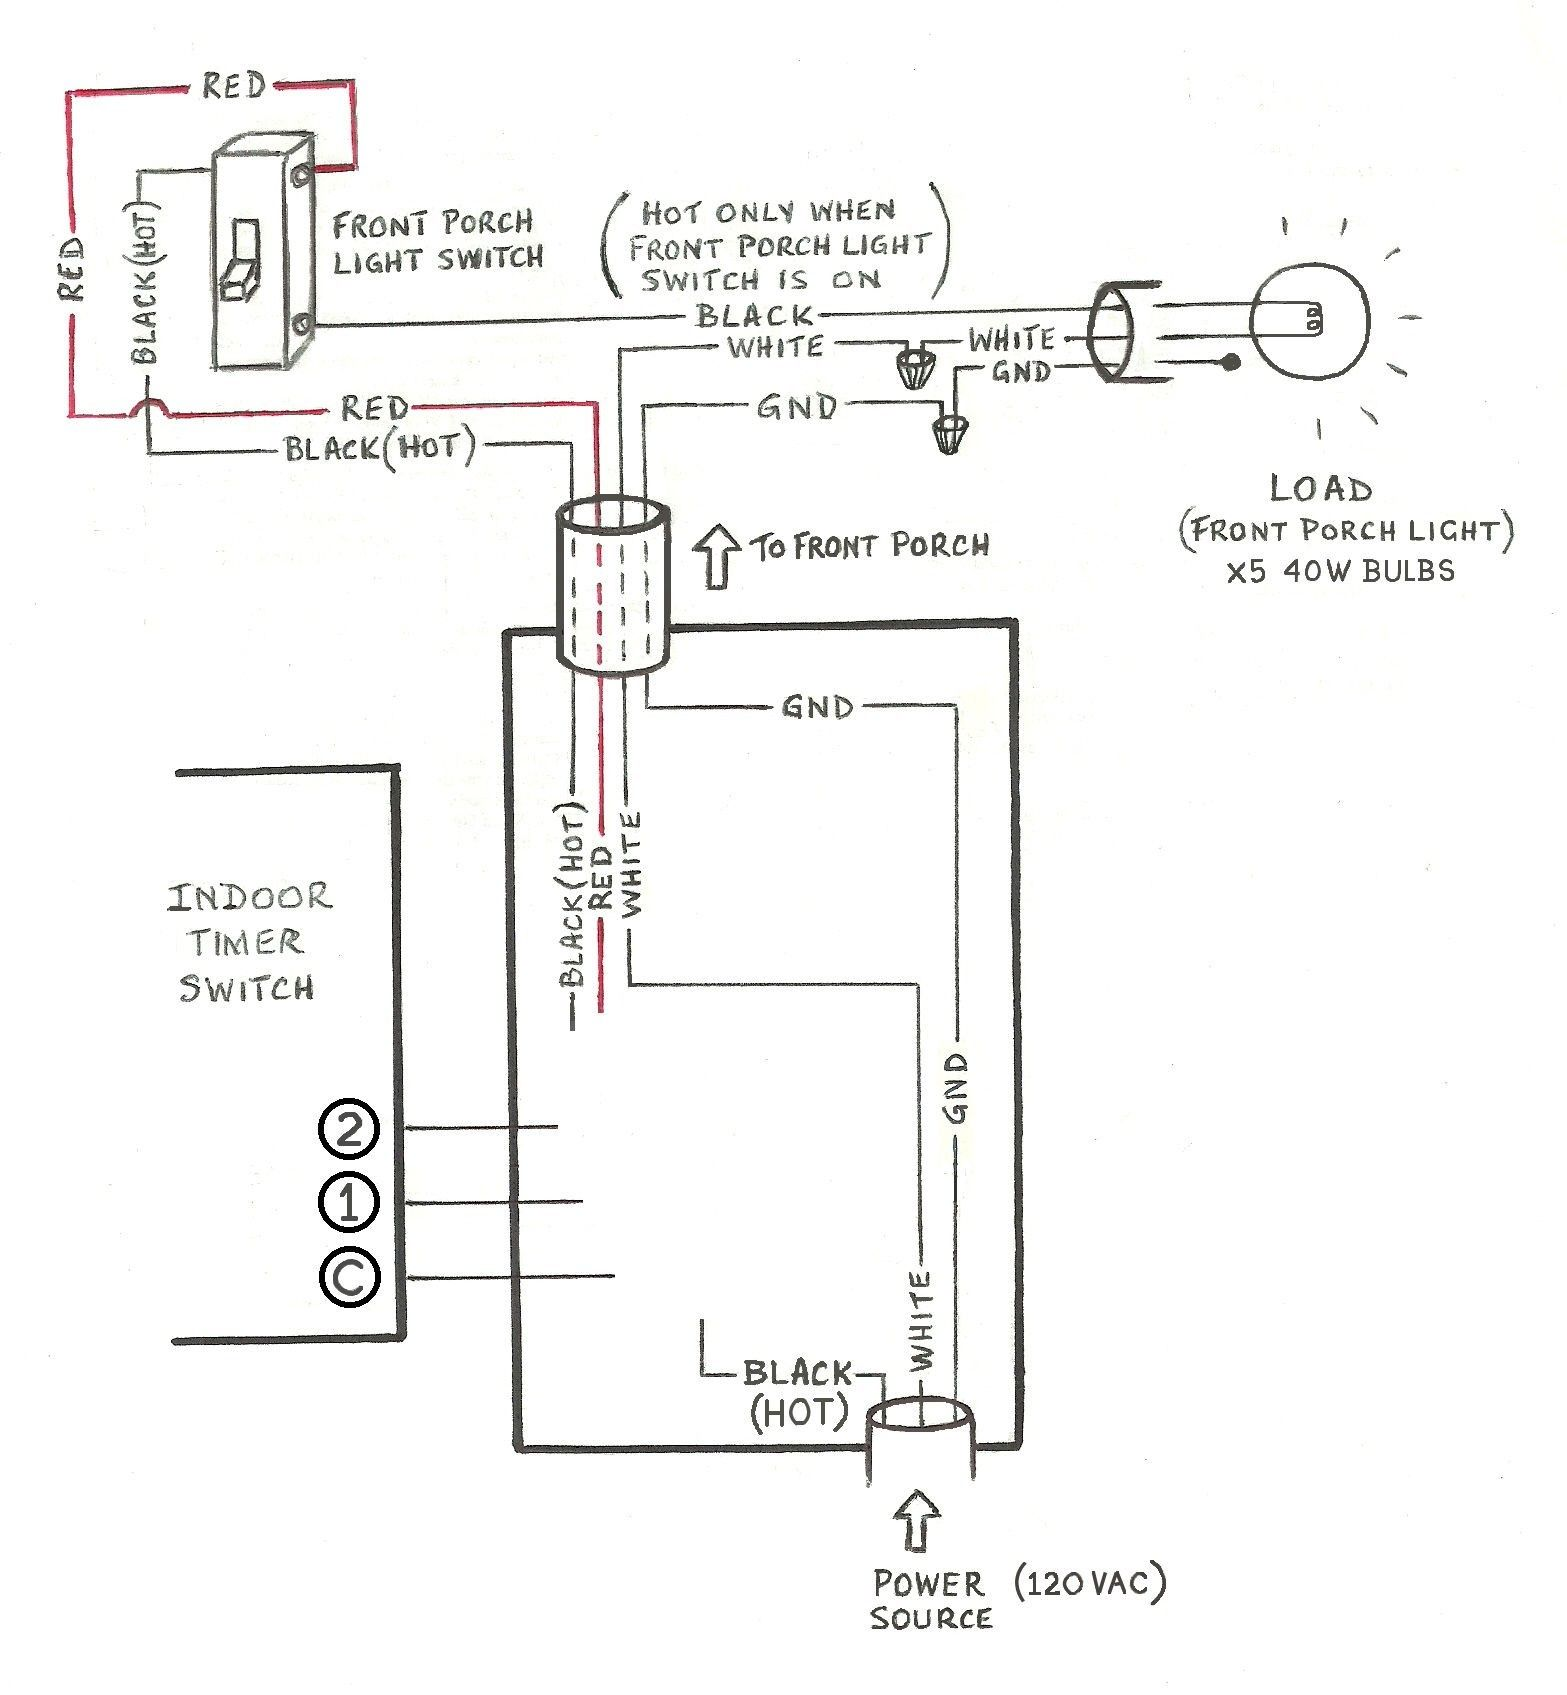 Leviton Switch Wiring Diagram Awesome in 2020 Light